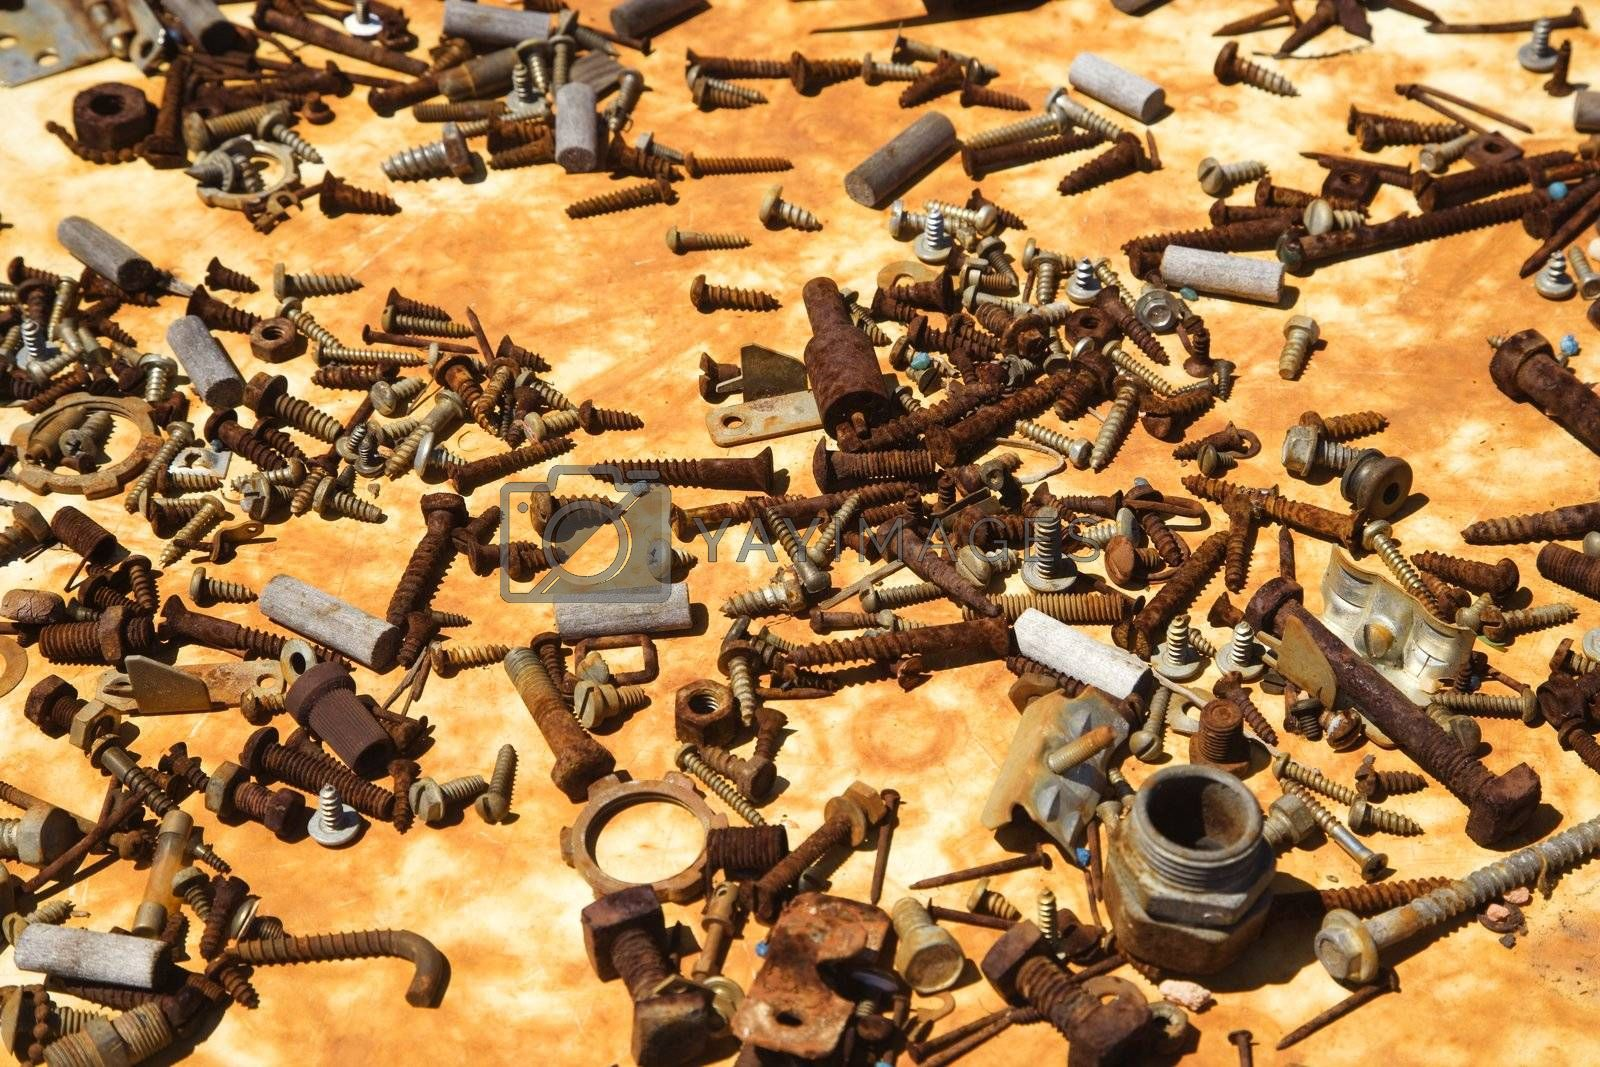 Multiple old rusty nails and screws.